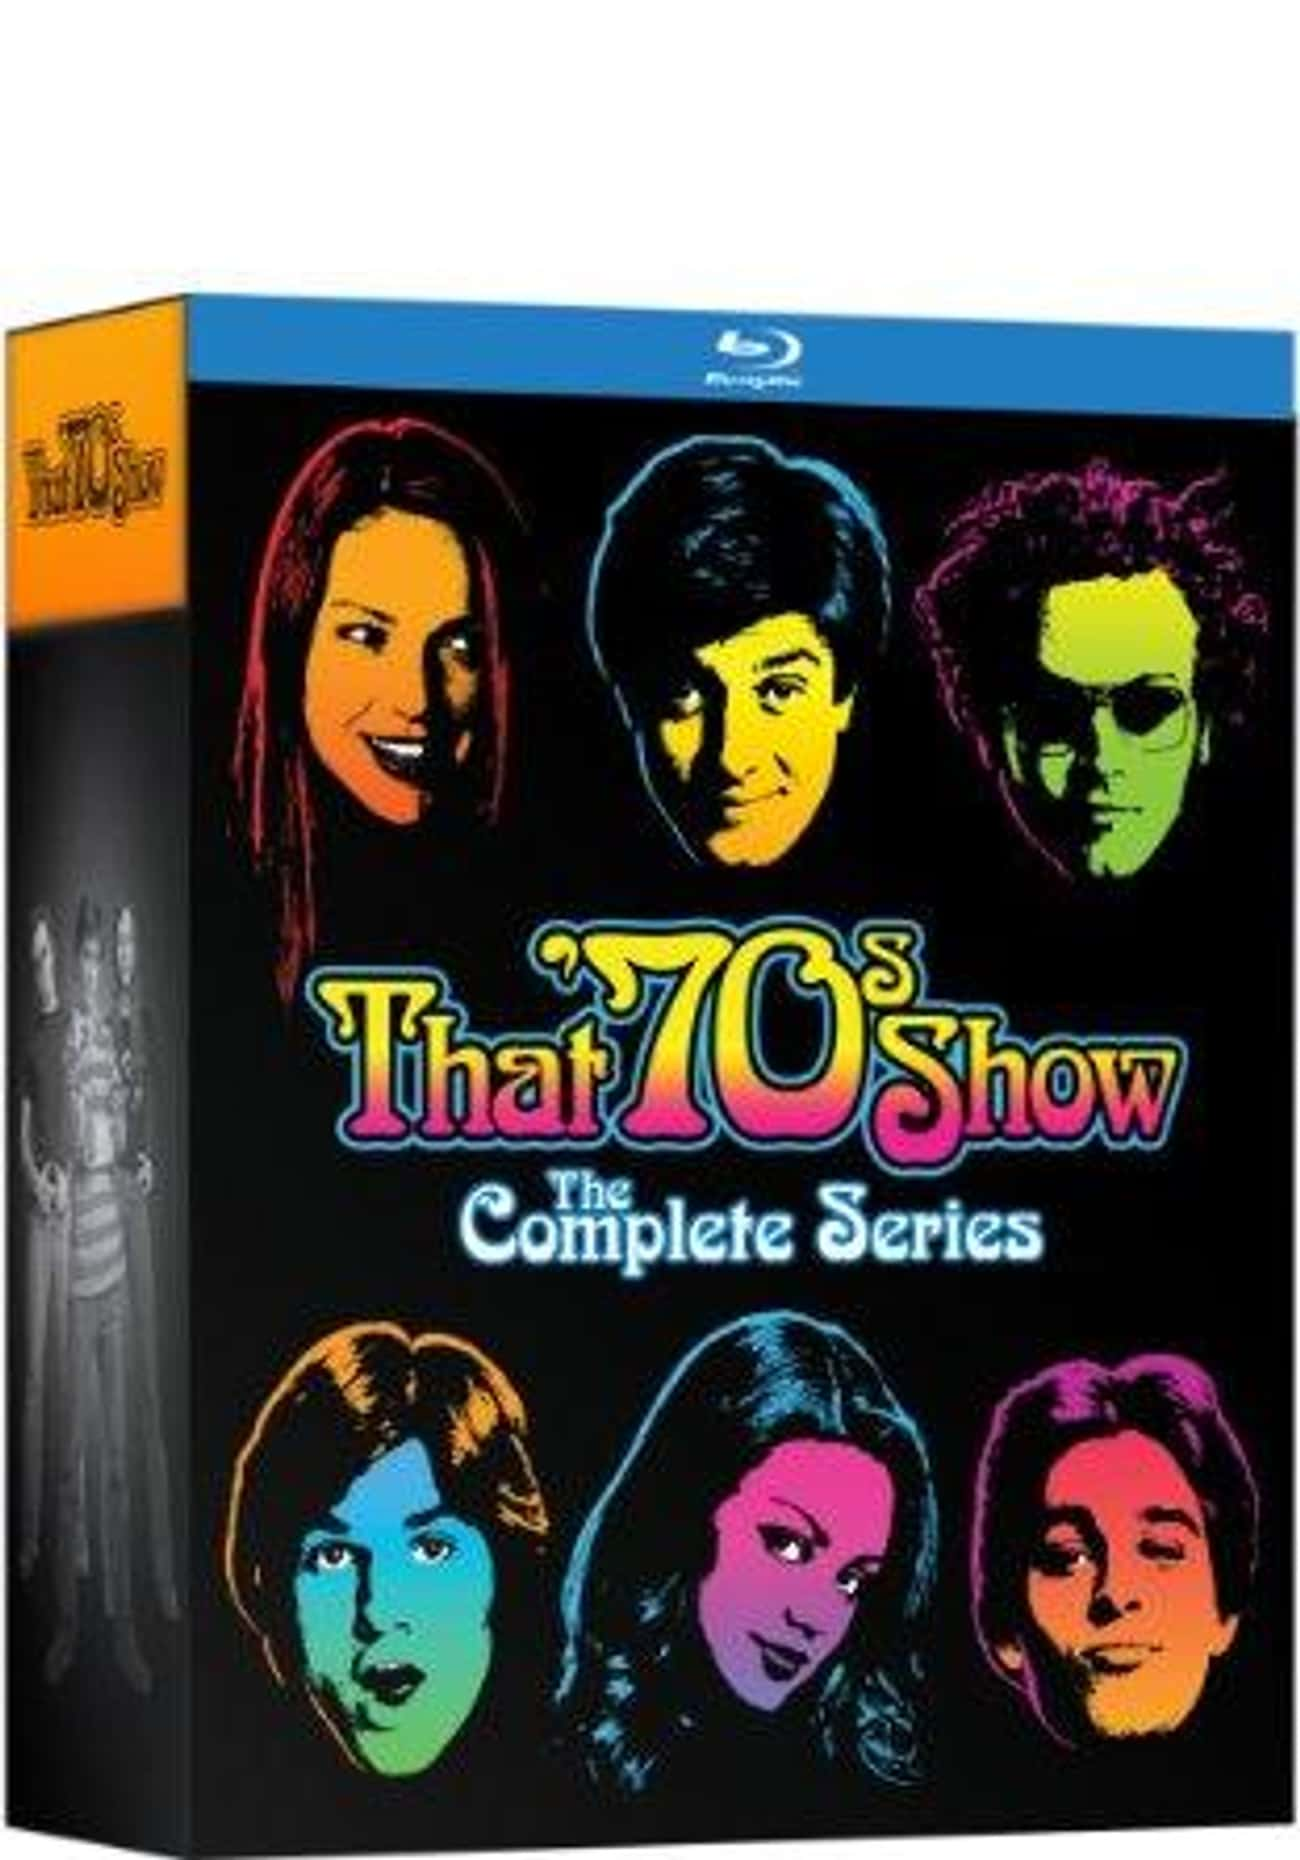 Complete Series Blu-ray